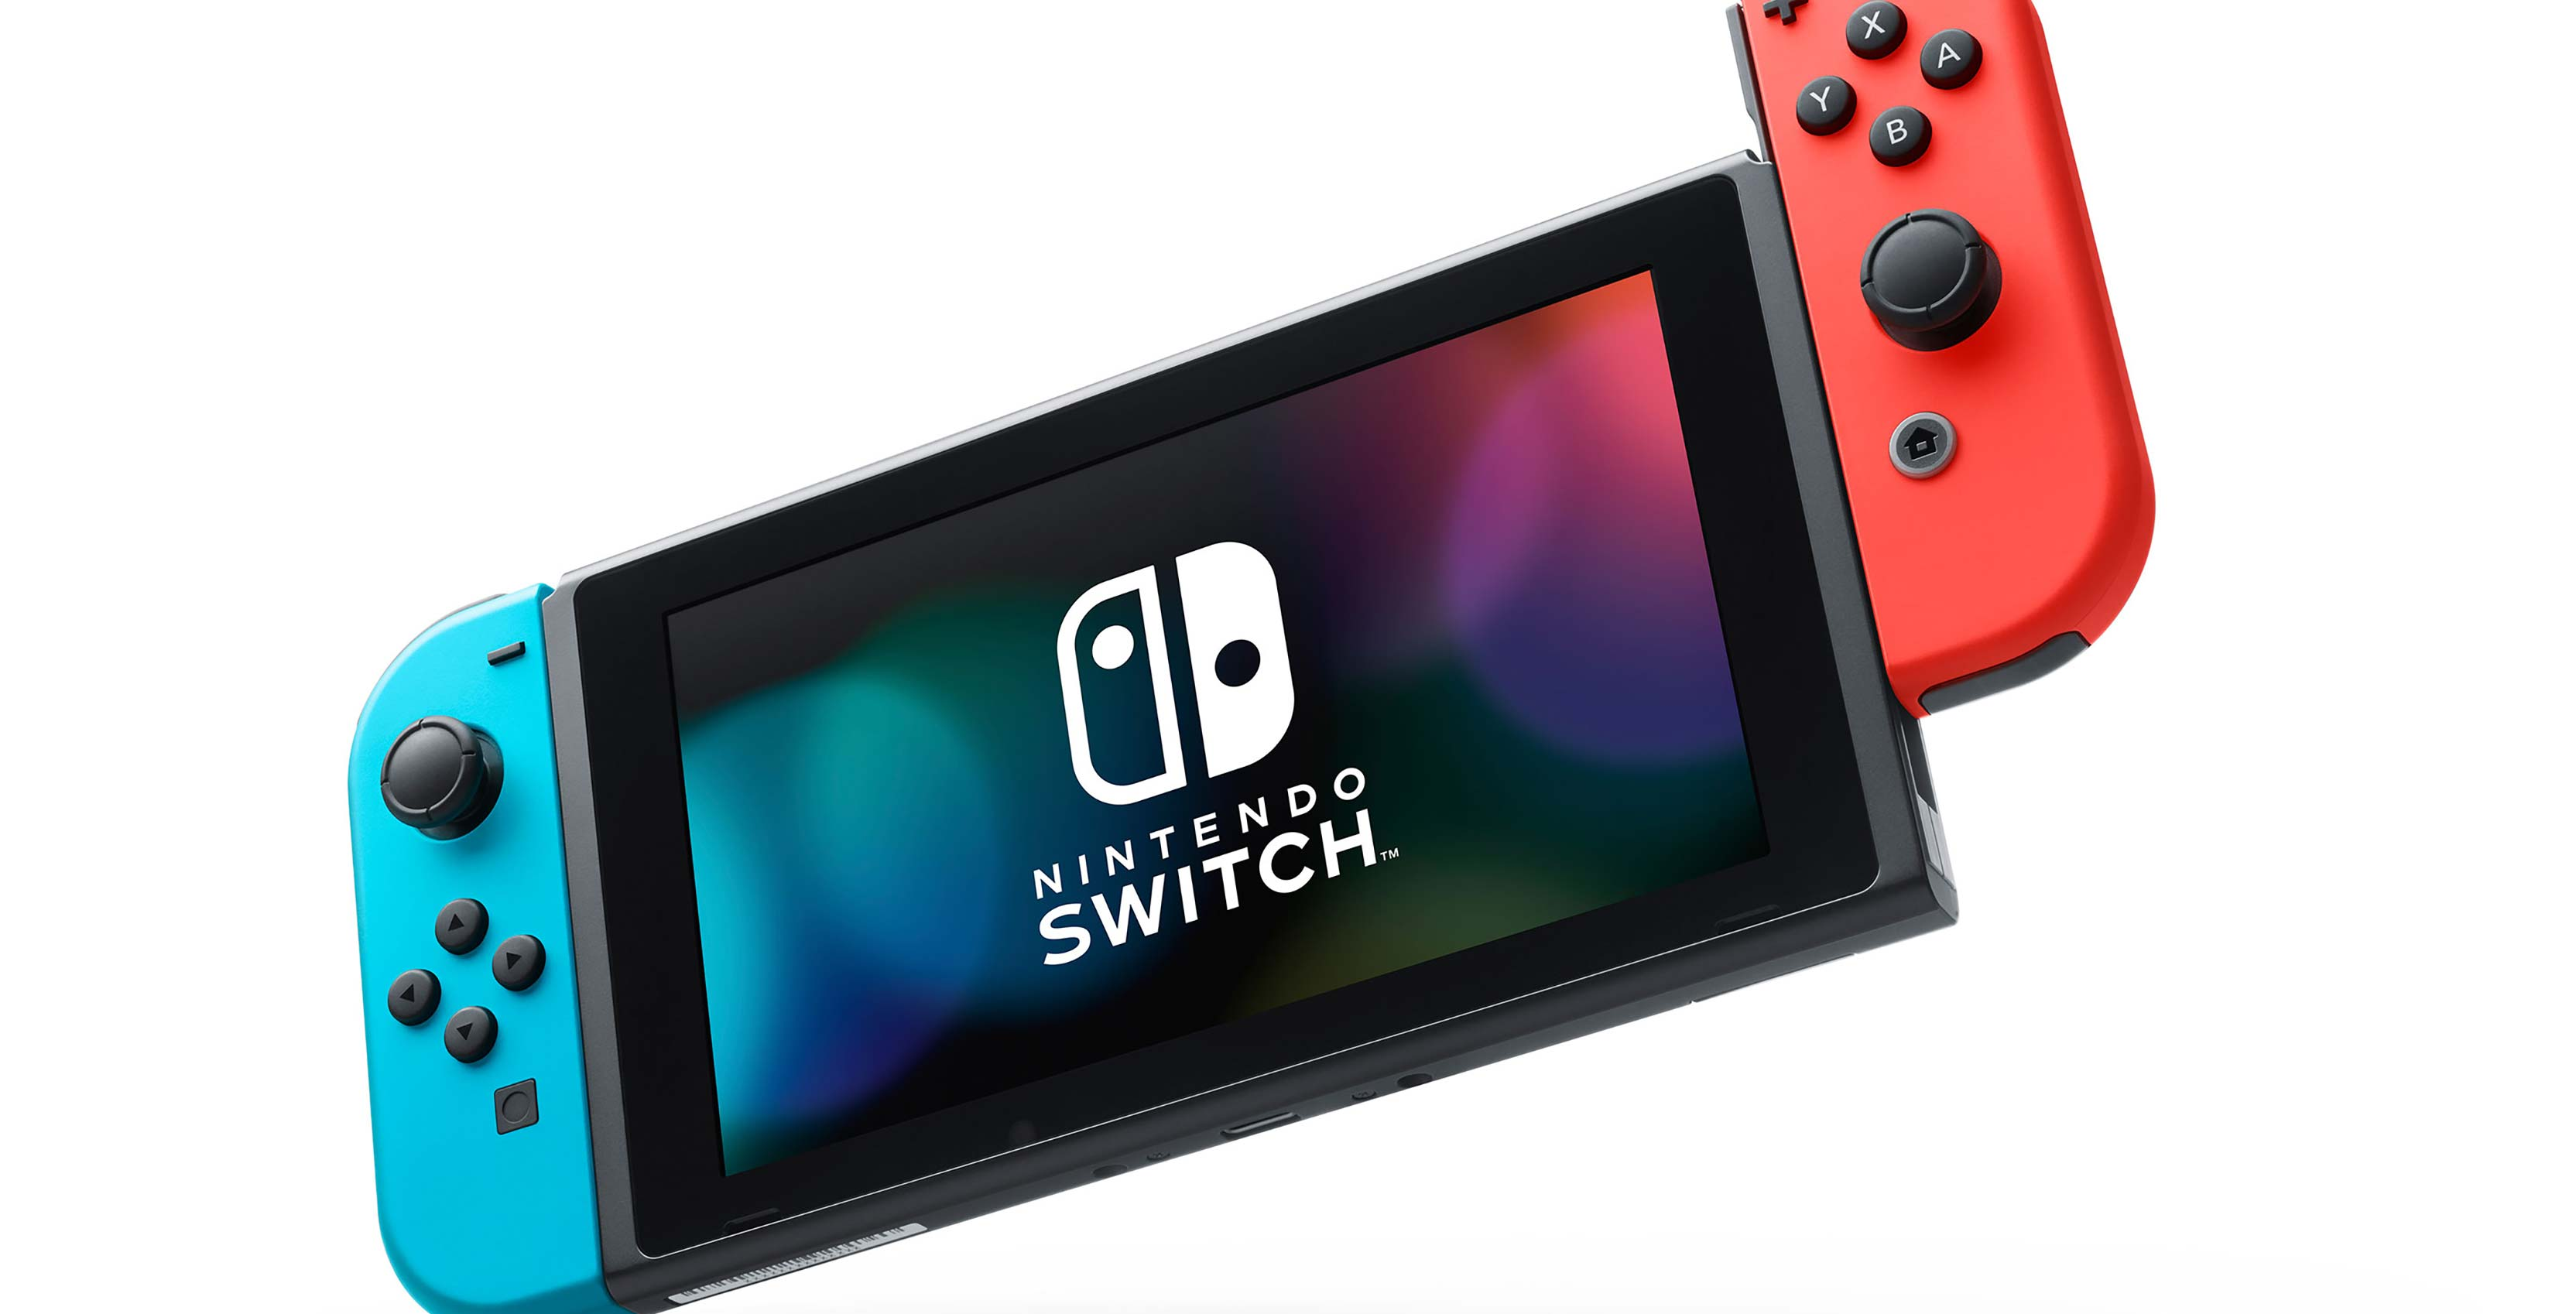 Nintendo Switch tablet and Joy-Cons - Nintendo Switch pre-orders